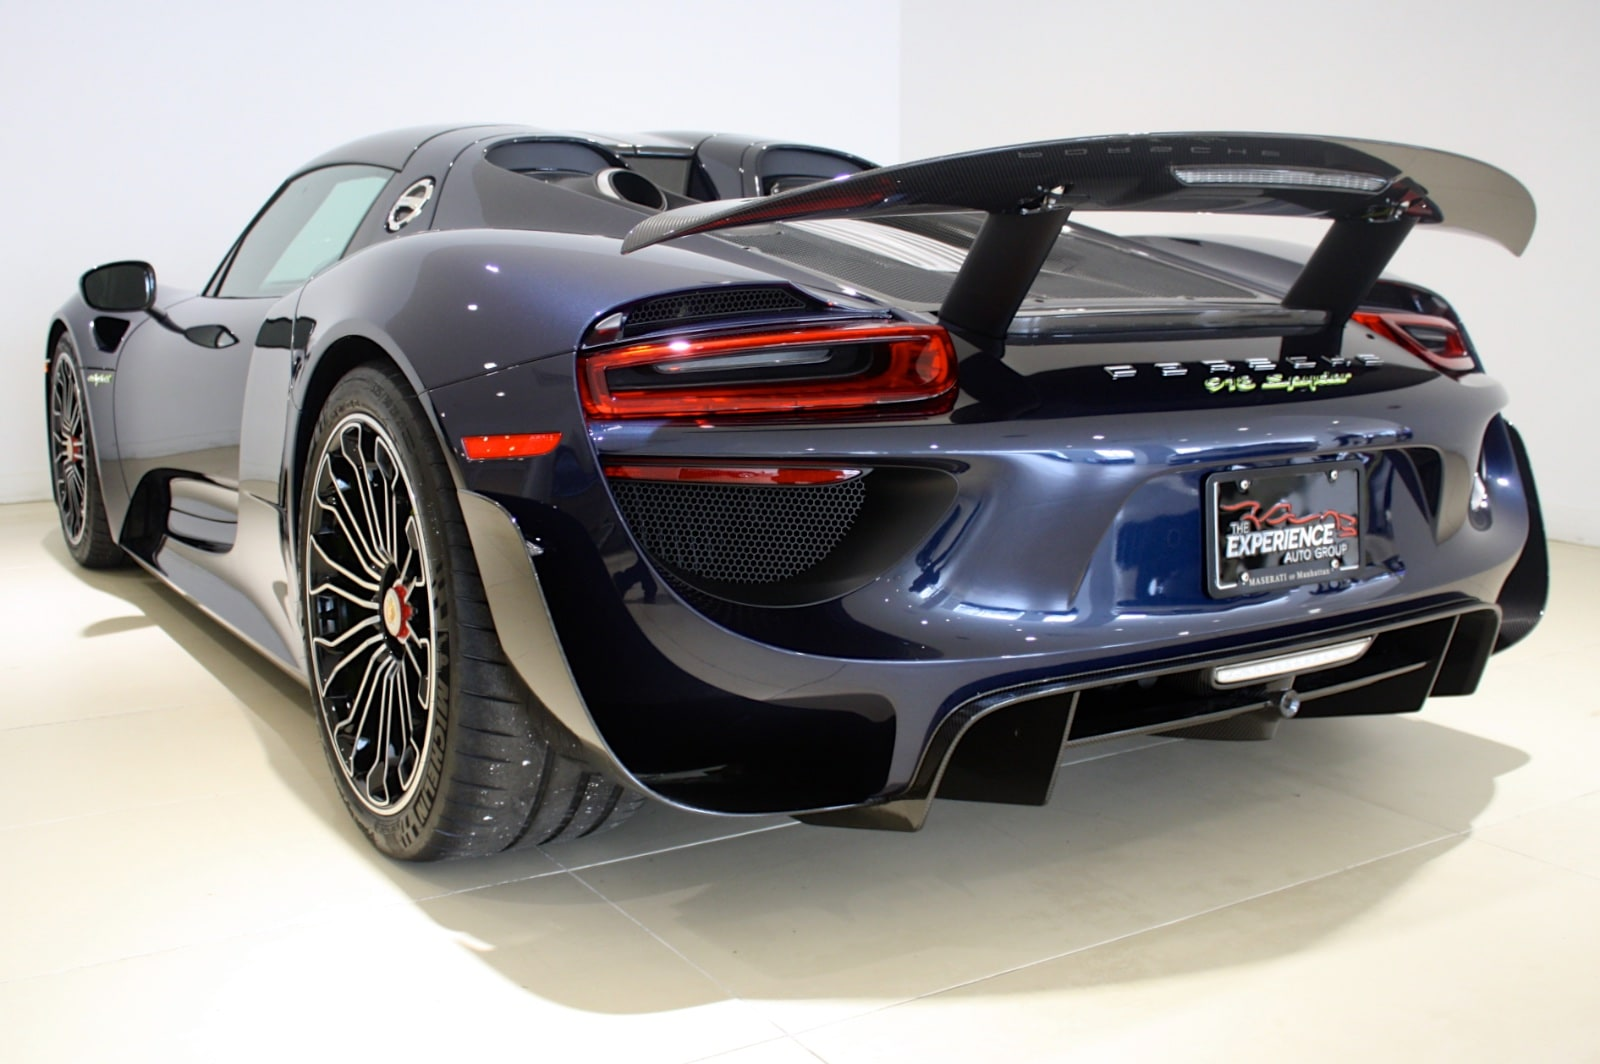 used 2015 porsche 918 spyder weissach package for sale freeport ny wp0ca2a19fs800130. Black Bedroom Furniture Sets. Home Design Ideas